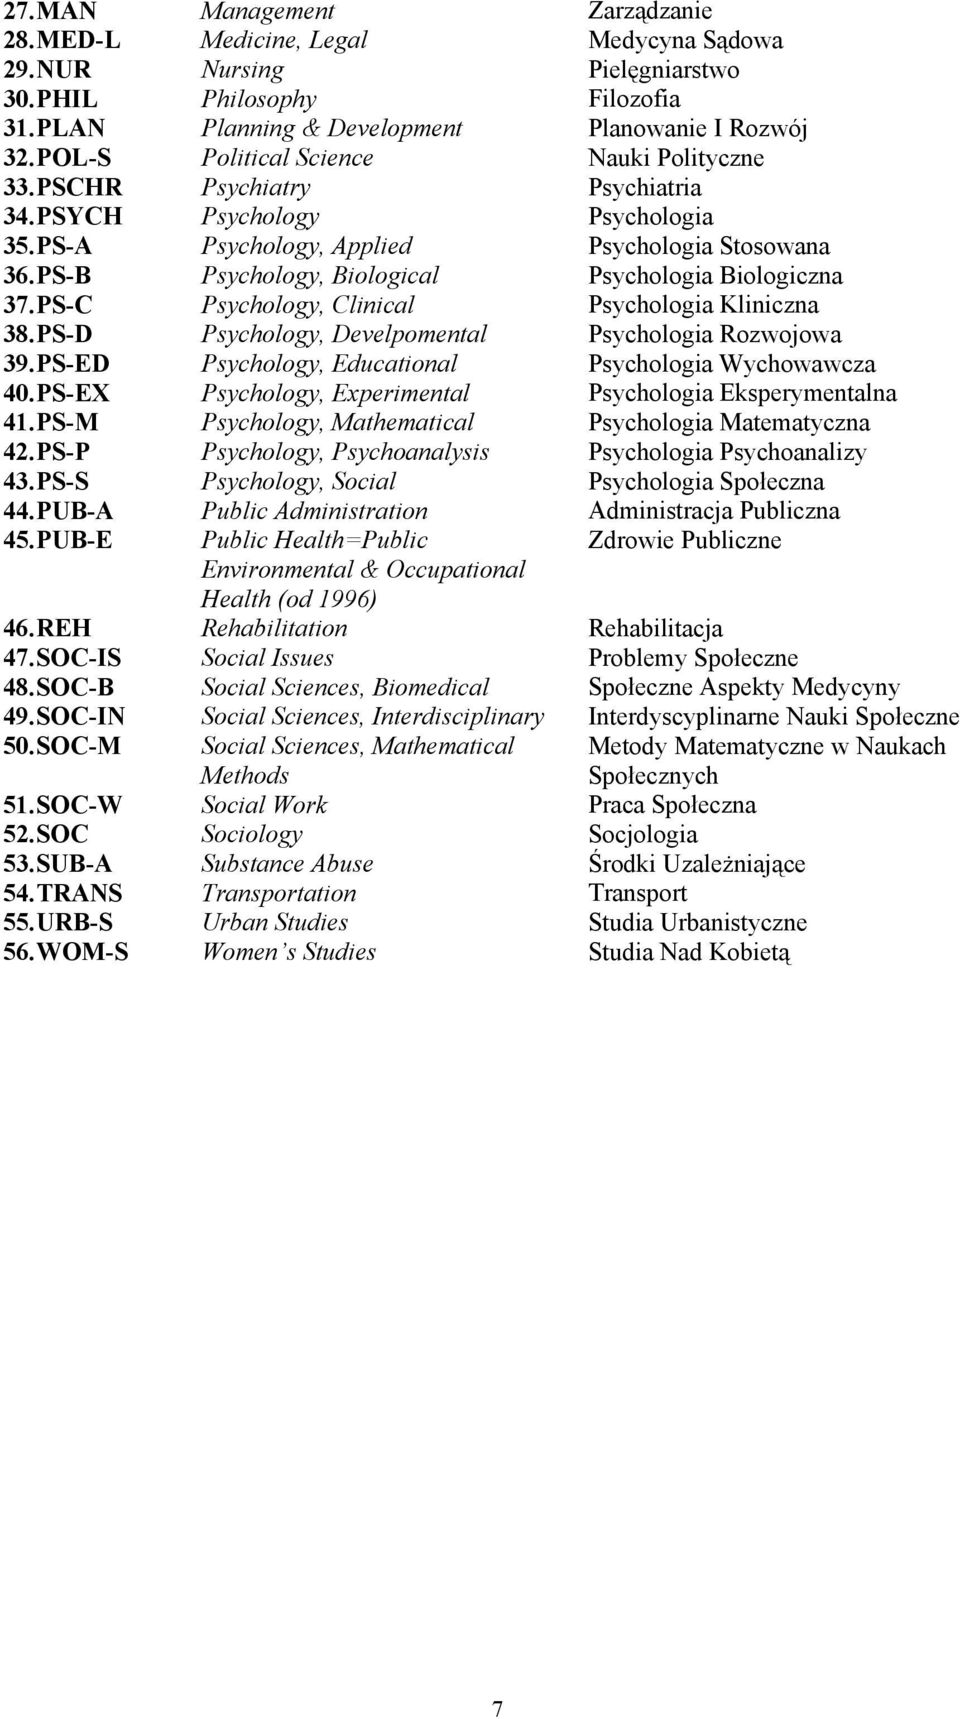 PS-B Psychology, Biological Psychologia Biologiczna 37. PS-C Psychology, Clinical Psychologia Kliniczna 38. PS-D Psychology, Develpomental Psychologia Rozwojowa 39.